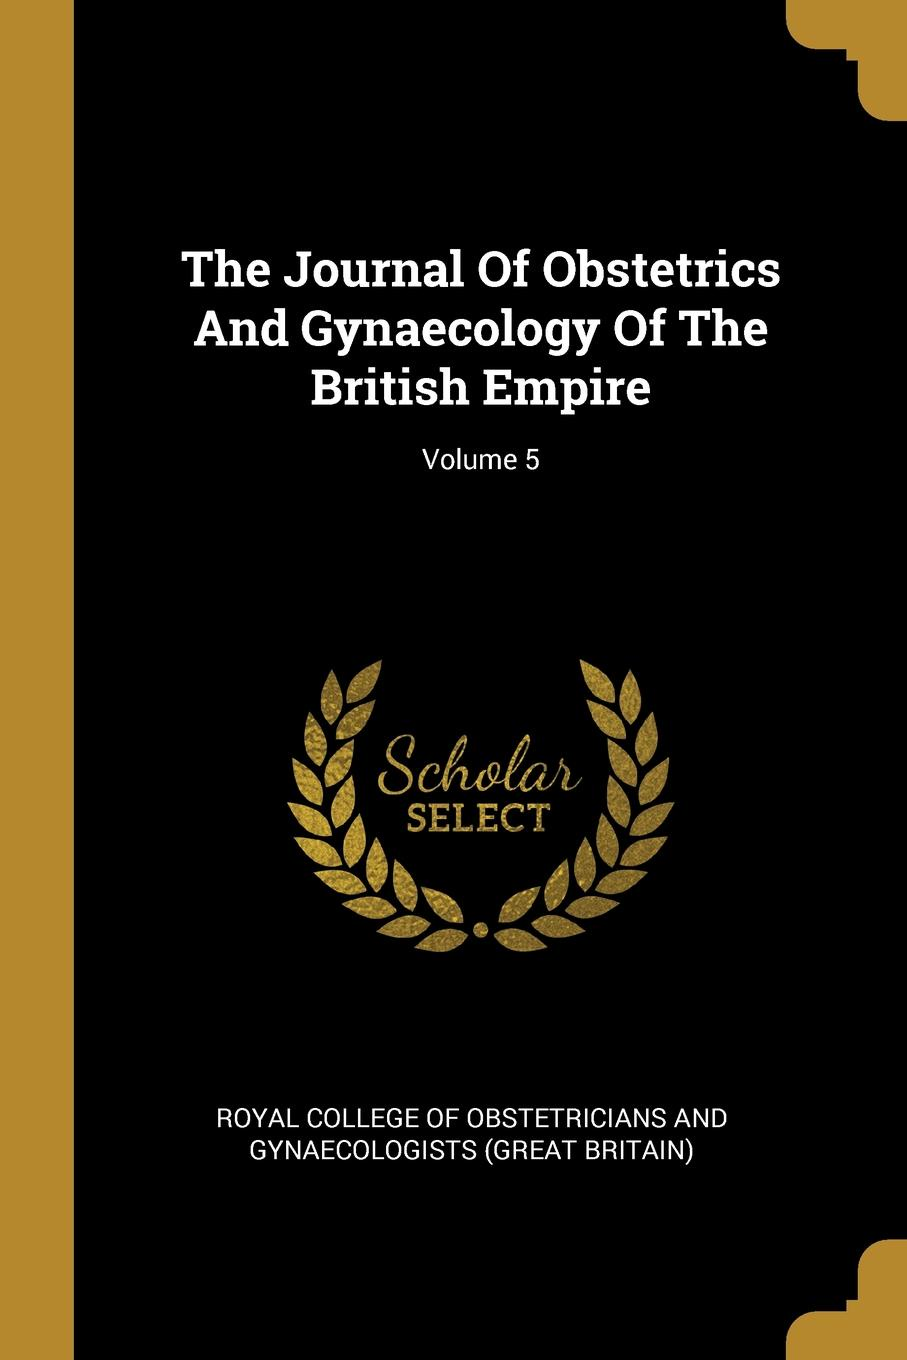 The Journal Of Obstetrics And Gynaecology Of The British Empire; Volume 5 the journal of obstetrics and gynaecology of the british empire volume 5